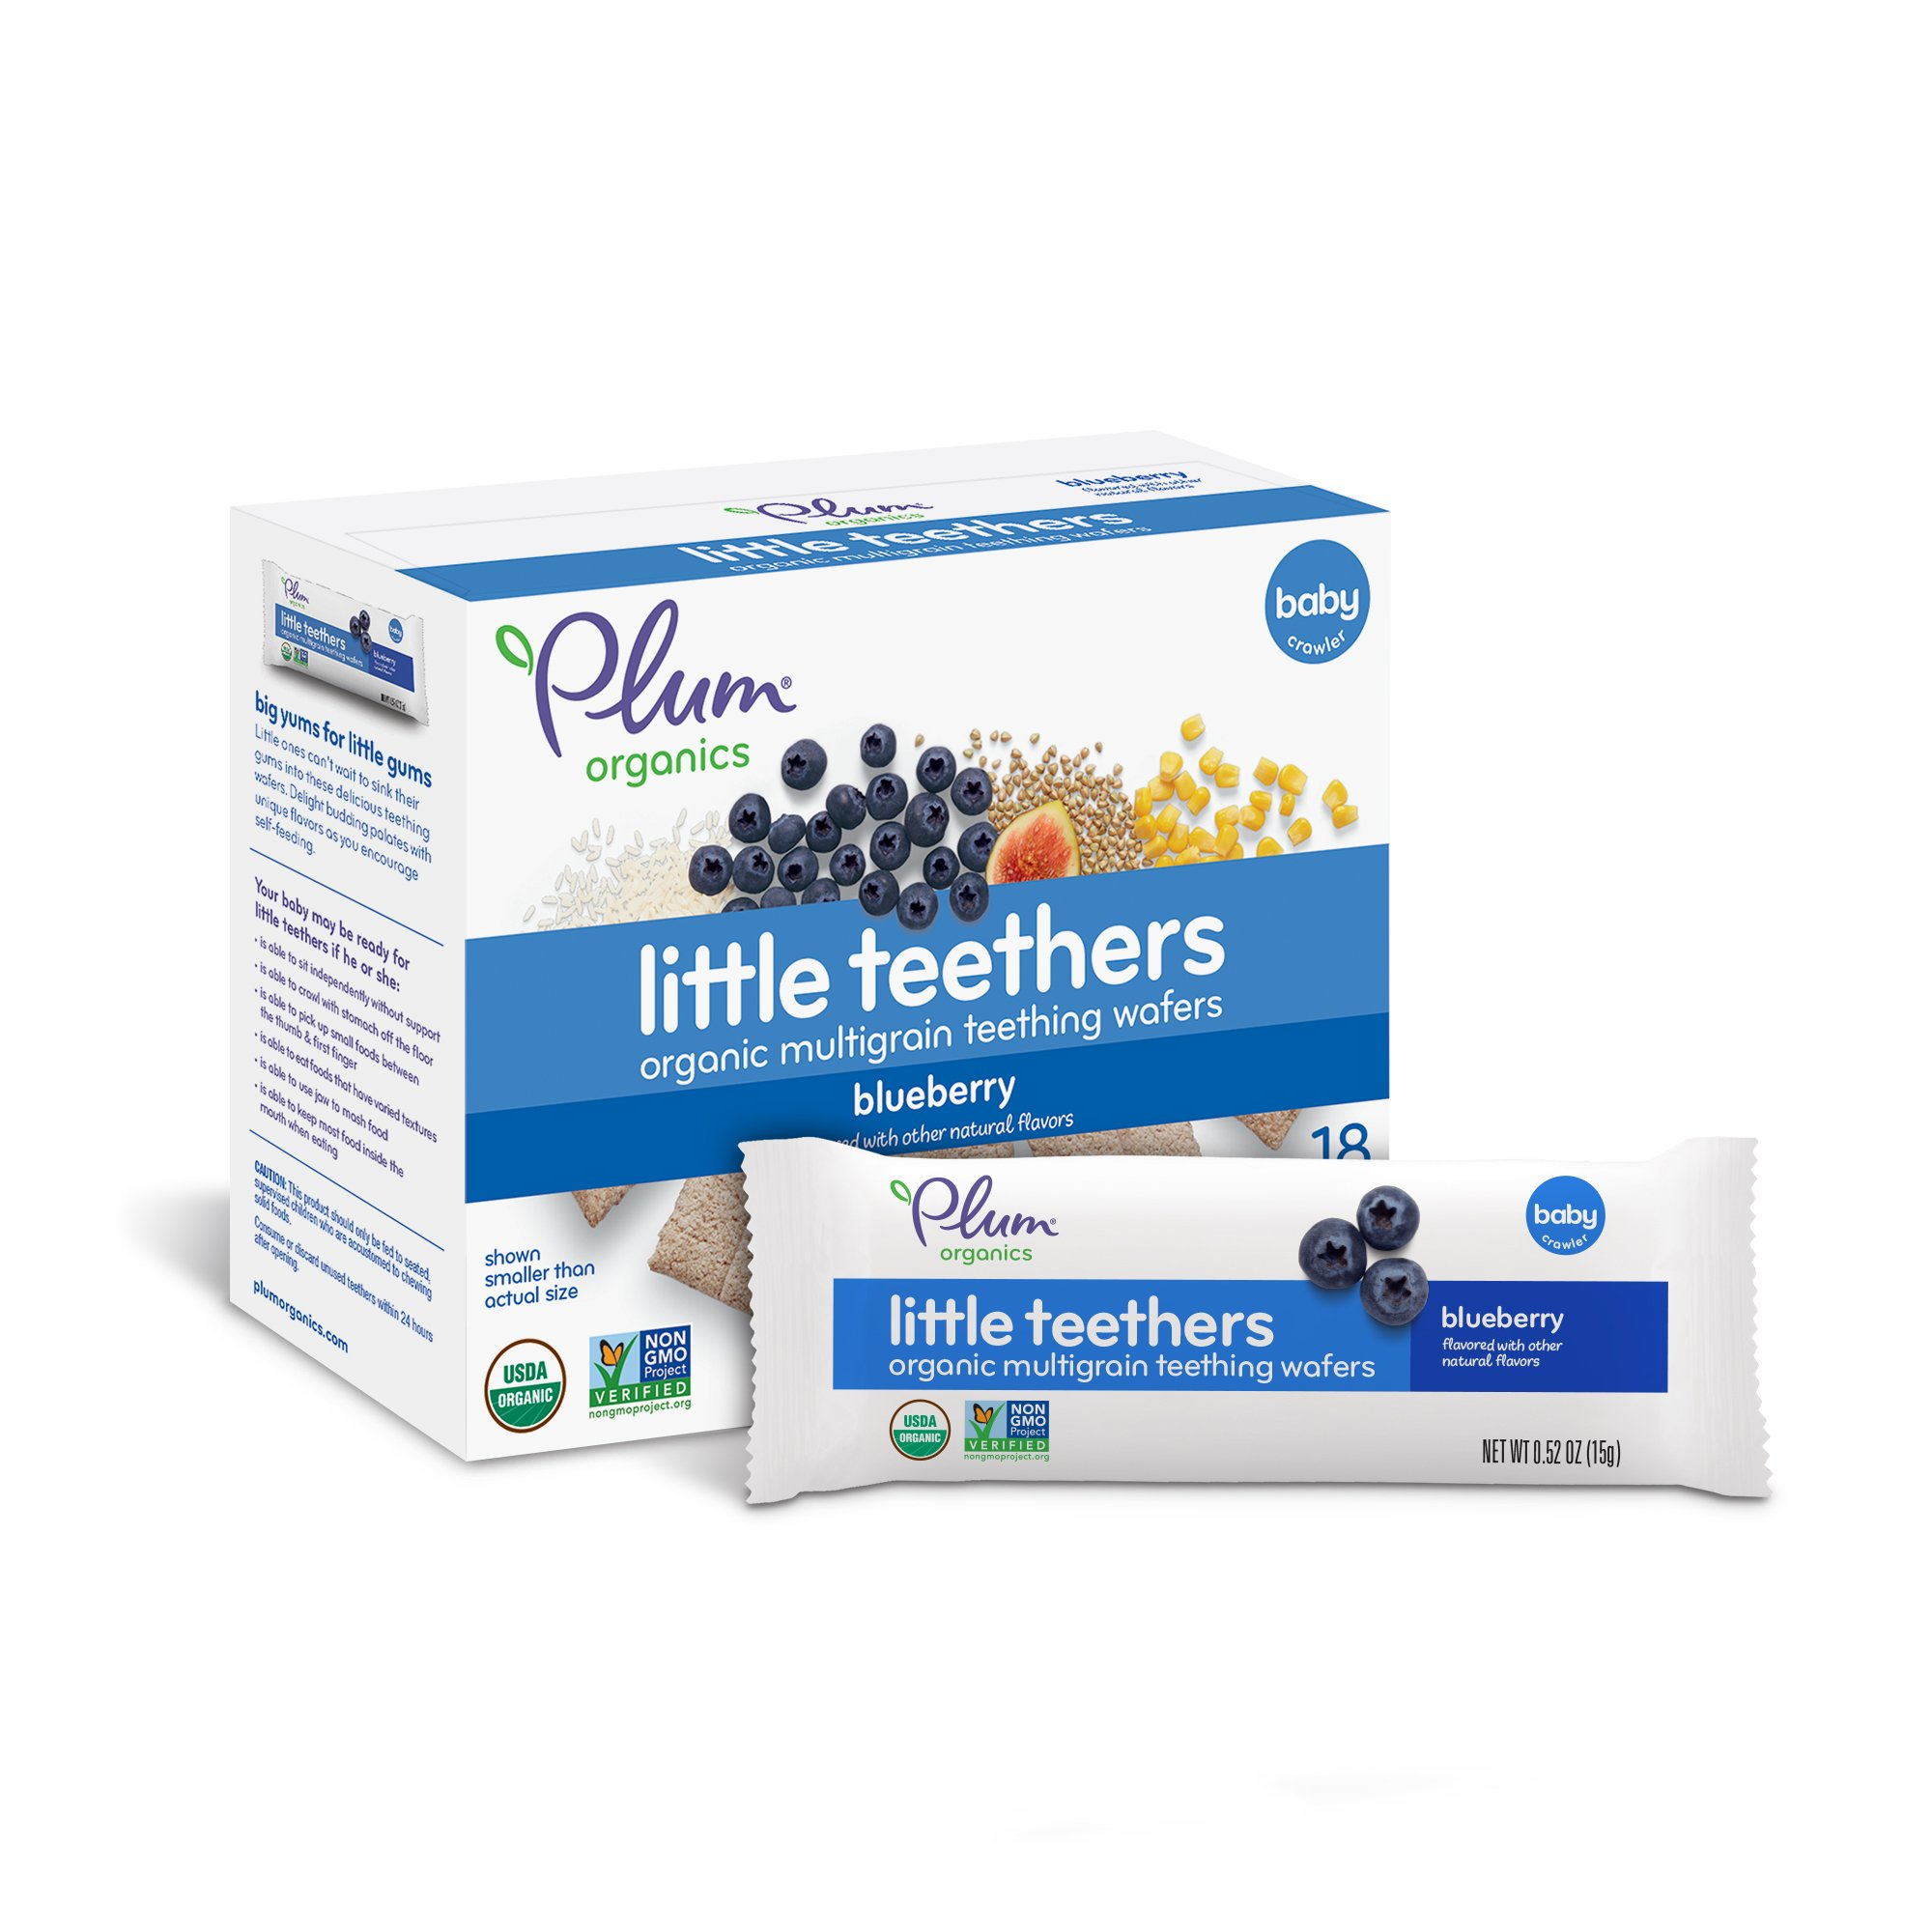 Plum Organics Little Teethers, Organic Baby Teething Wafers, Blueberry, 3 oz, 6 count (Pack of 6)